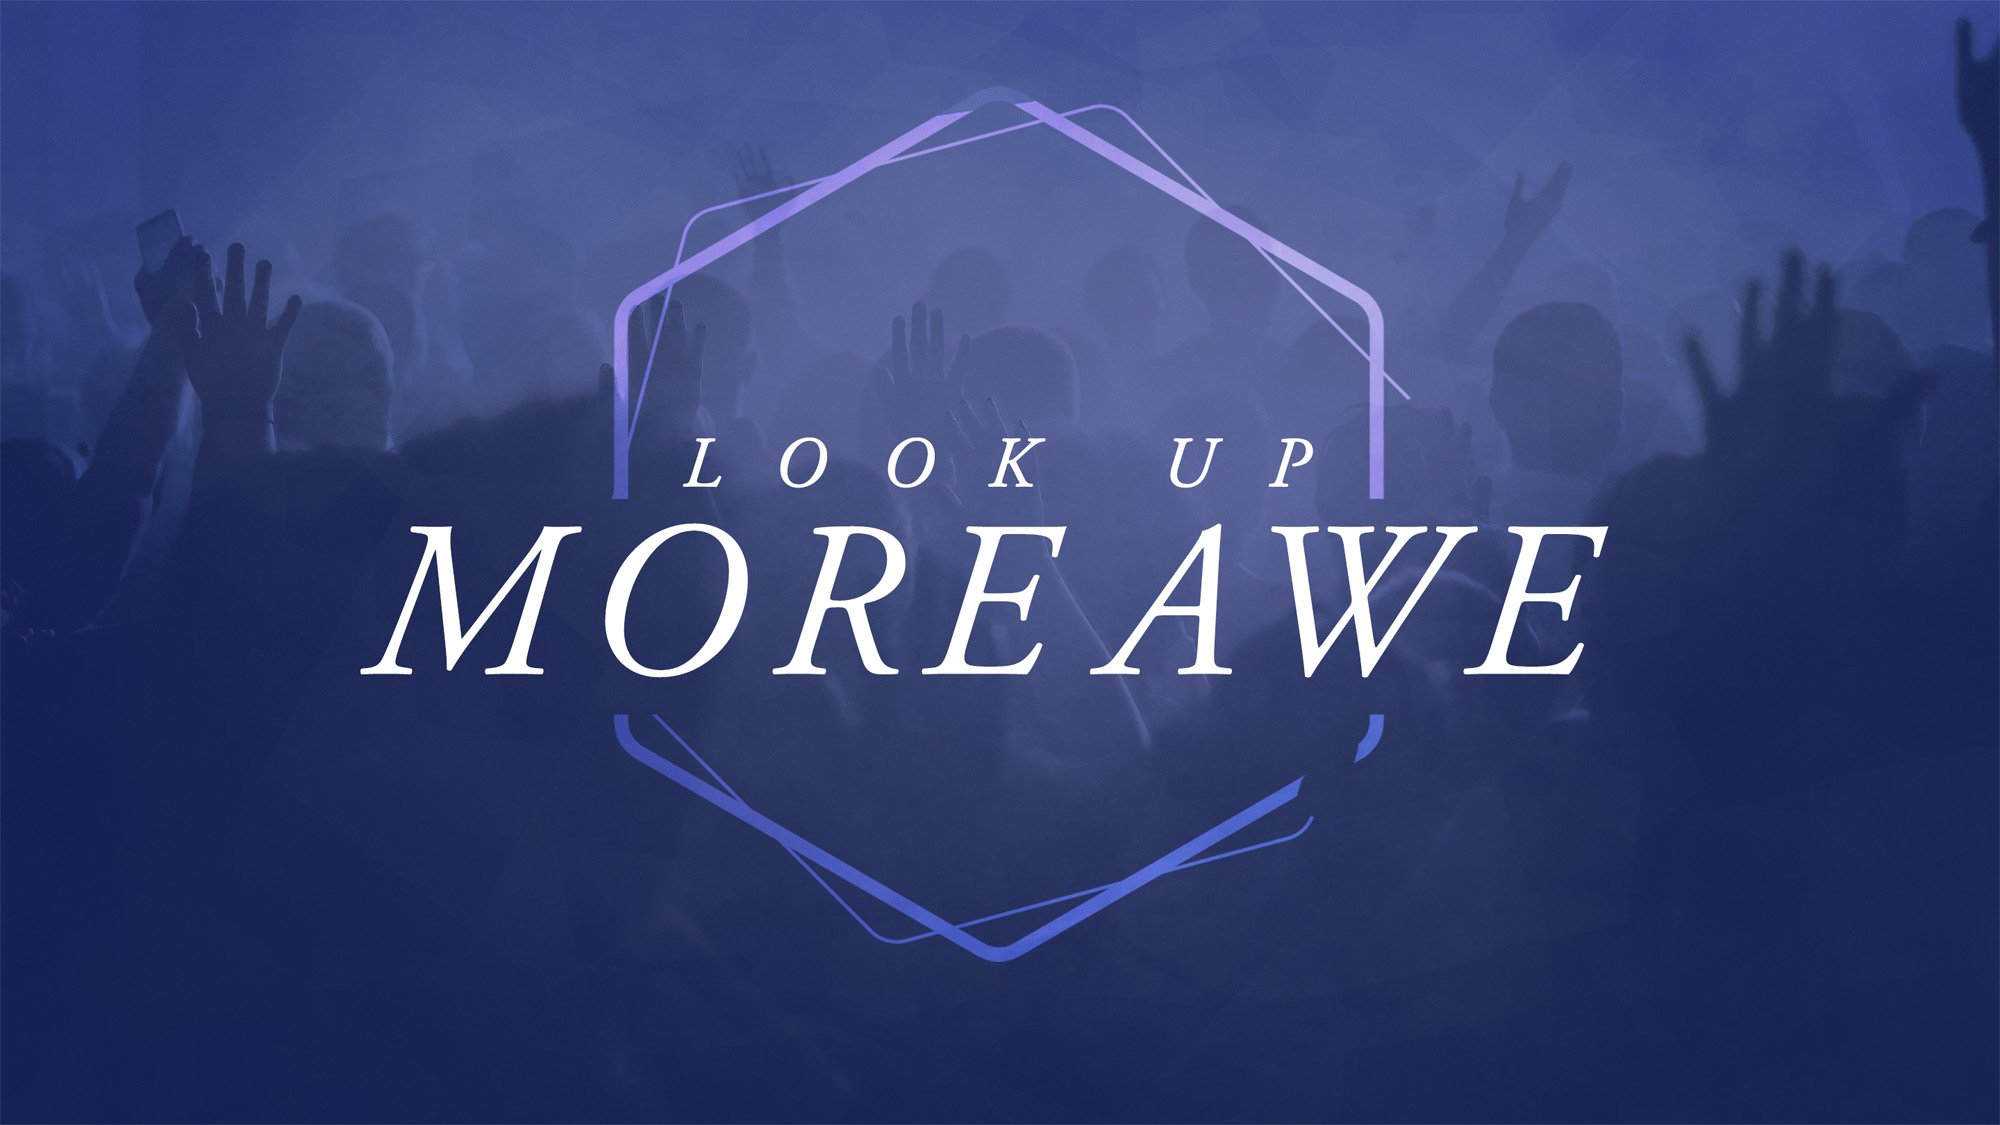 Look Up - More Awe